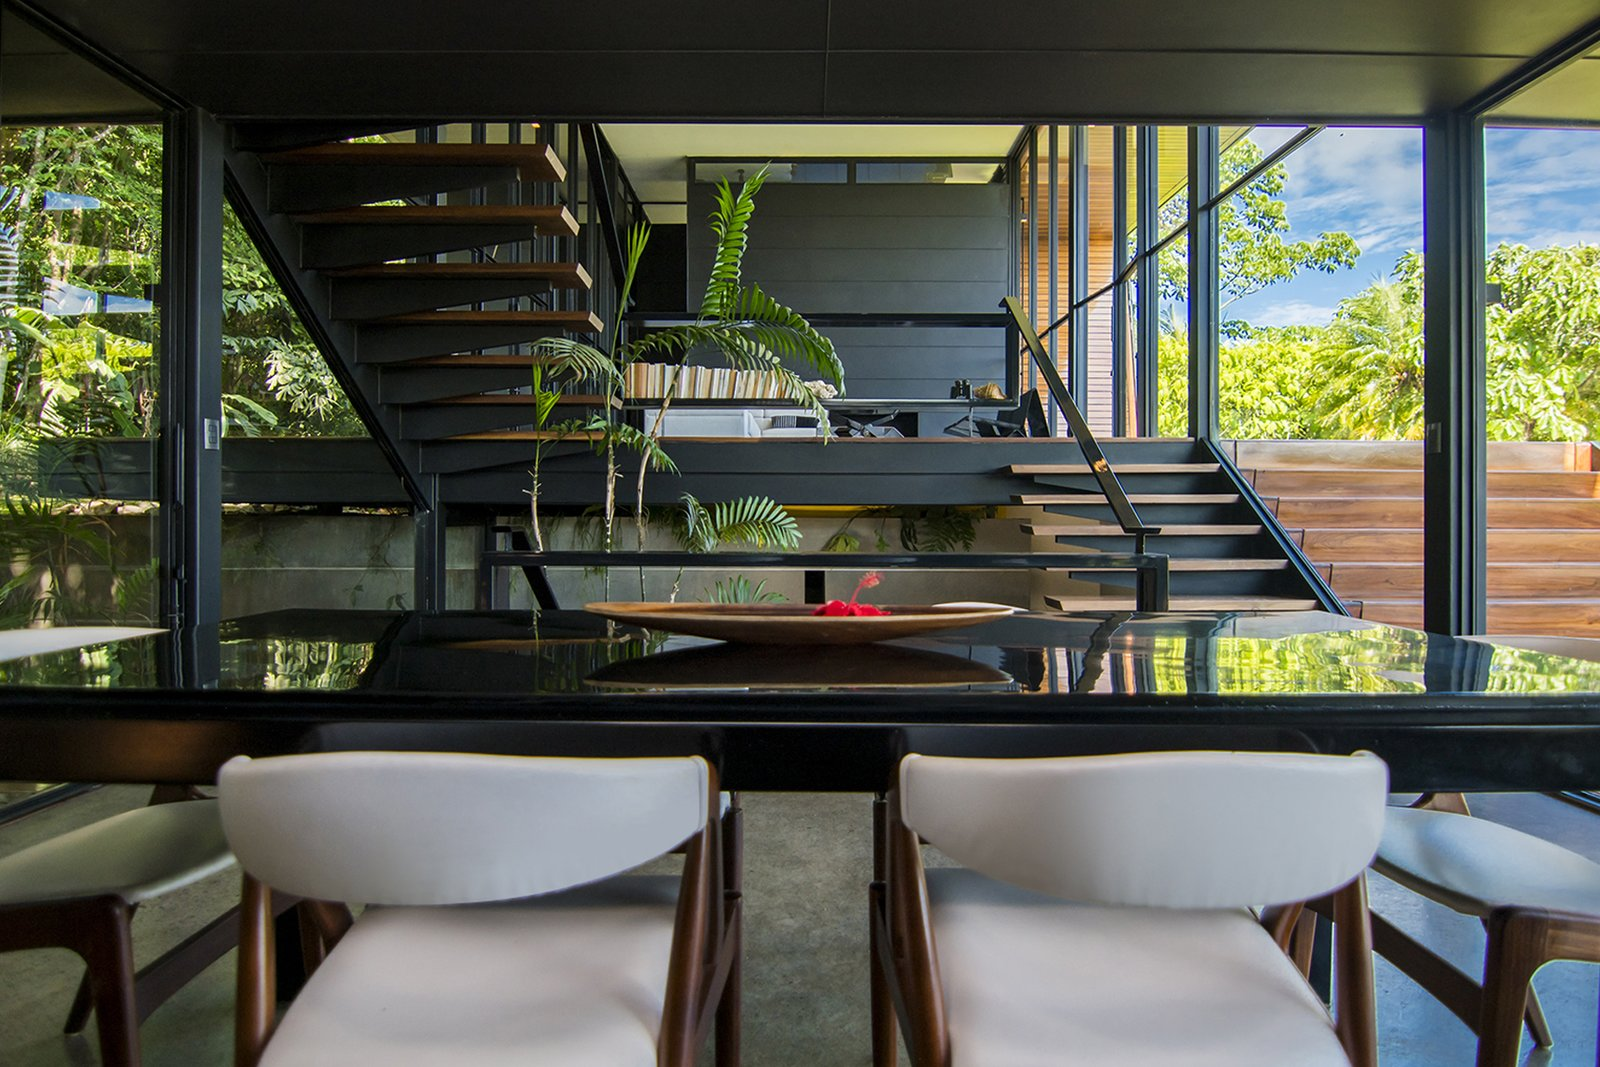 Dining Room, Chair, Table, and Concrete Floor  A Harmonious Forest Residence in Costa Rica Asks $1.05M